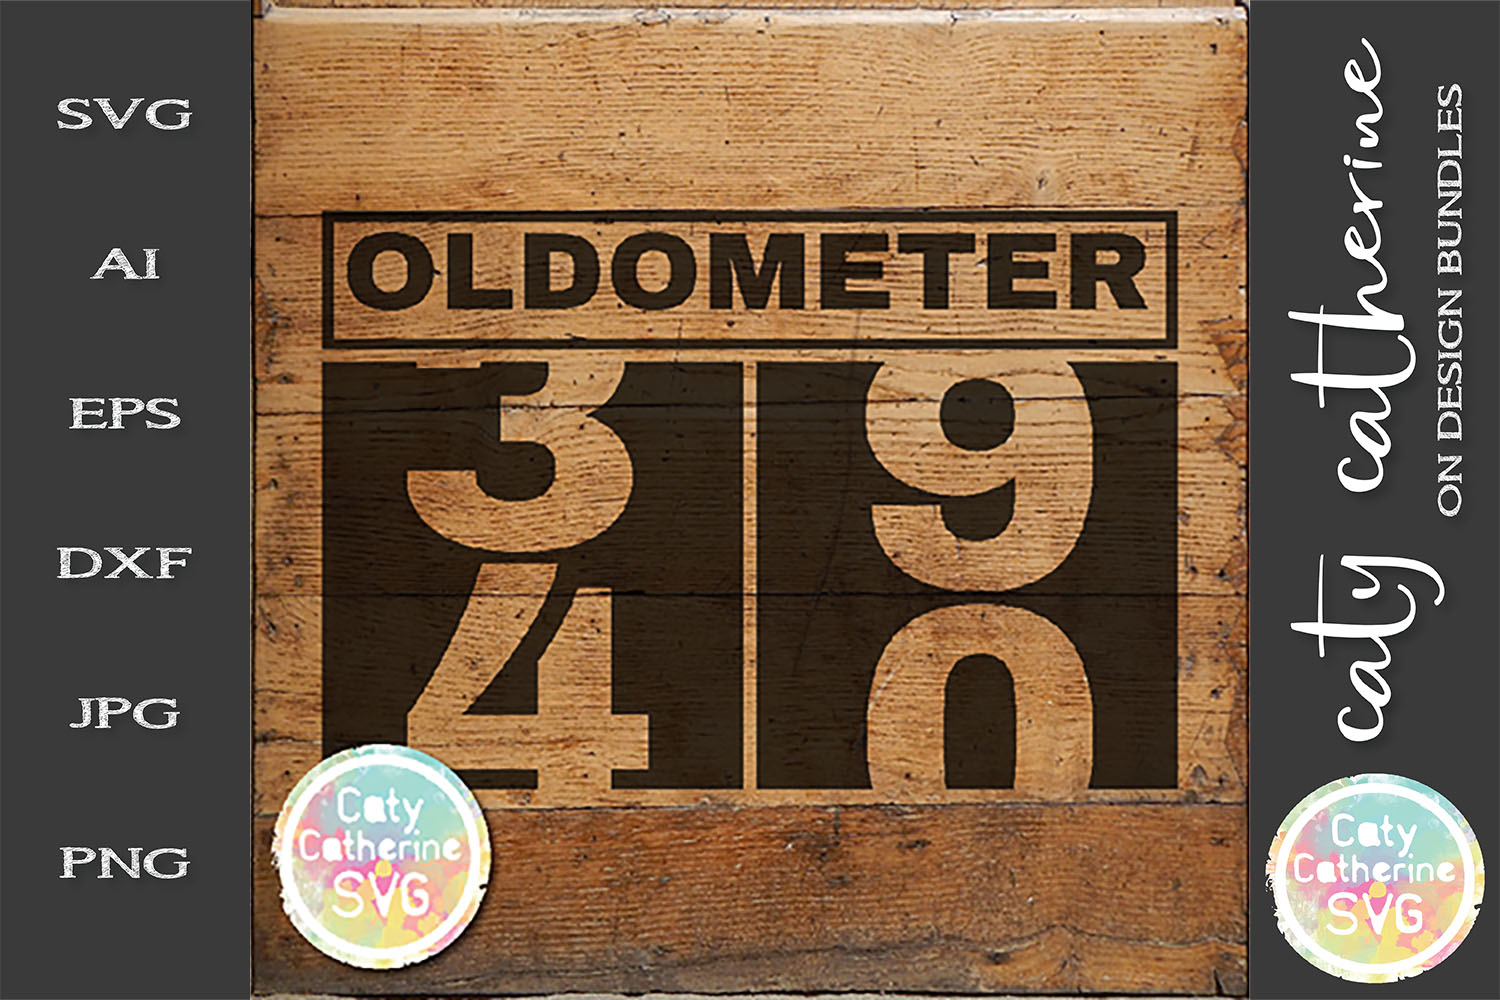 40 Fourtieth Birthday Oldometer SVG Cut File example image 1